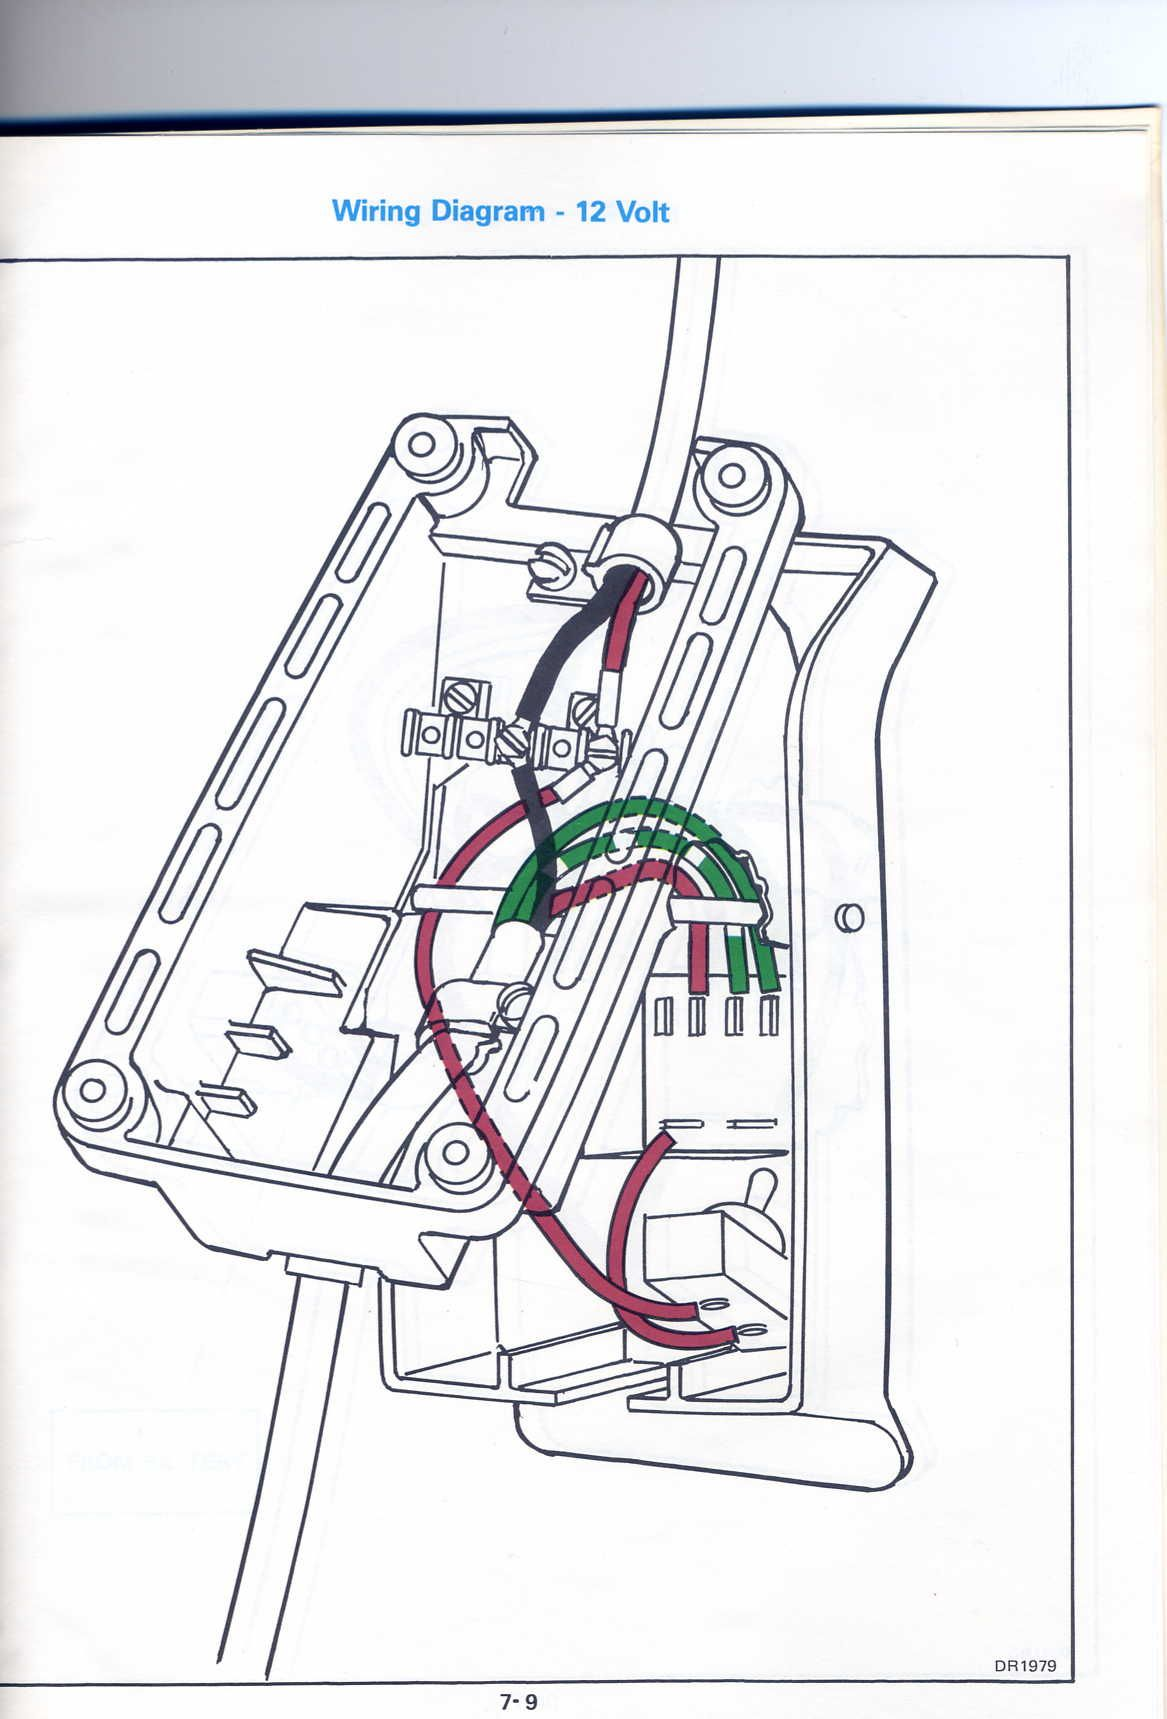 Motorguide Trolling Motor Wiring Diagram Trying To Repair A Friends 1986 Johnson Trolling Motor Model Trolling Motor Motorguide Trolling Motor Diagram Design